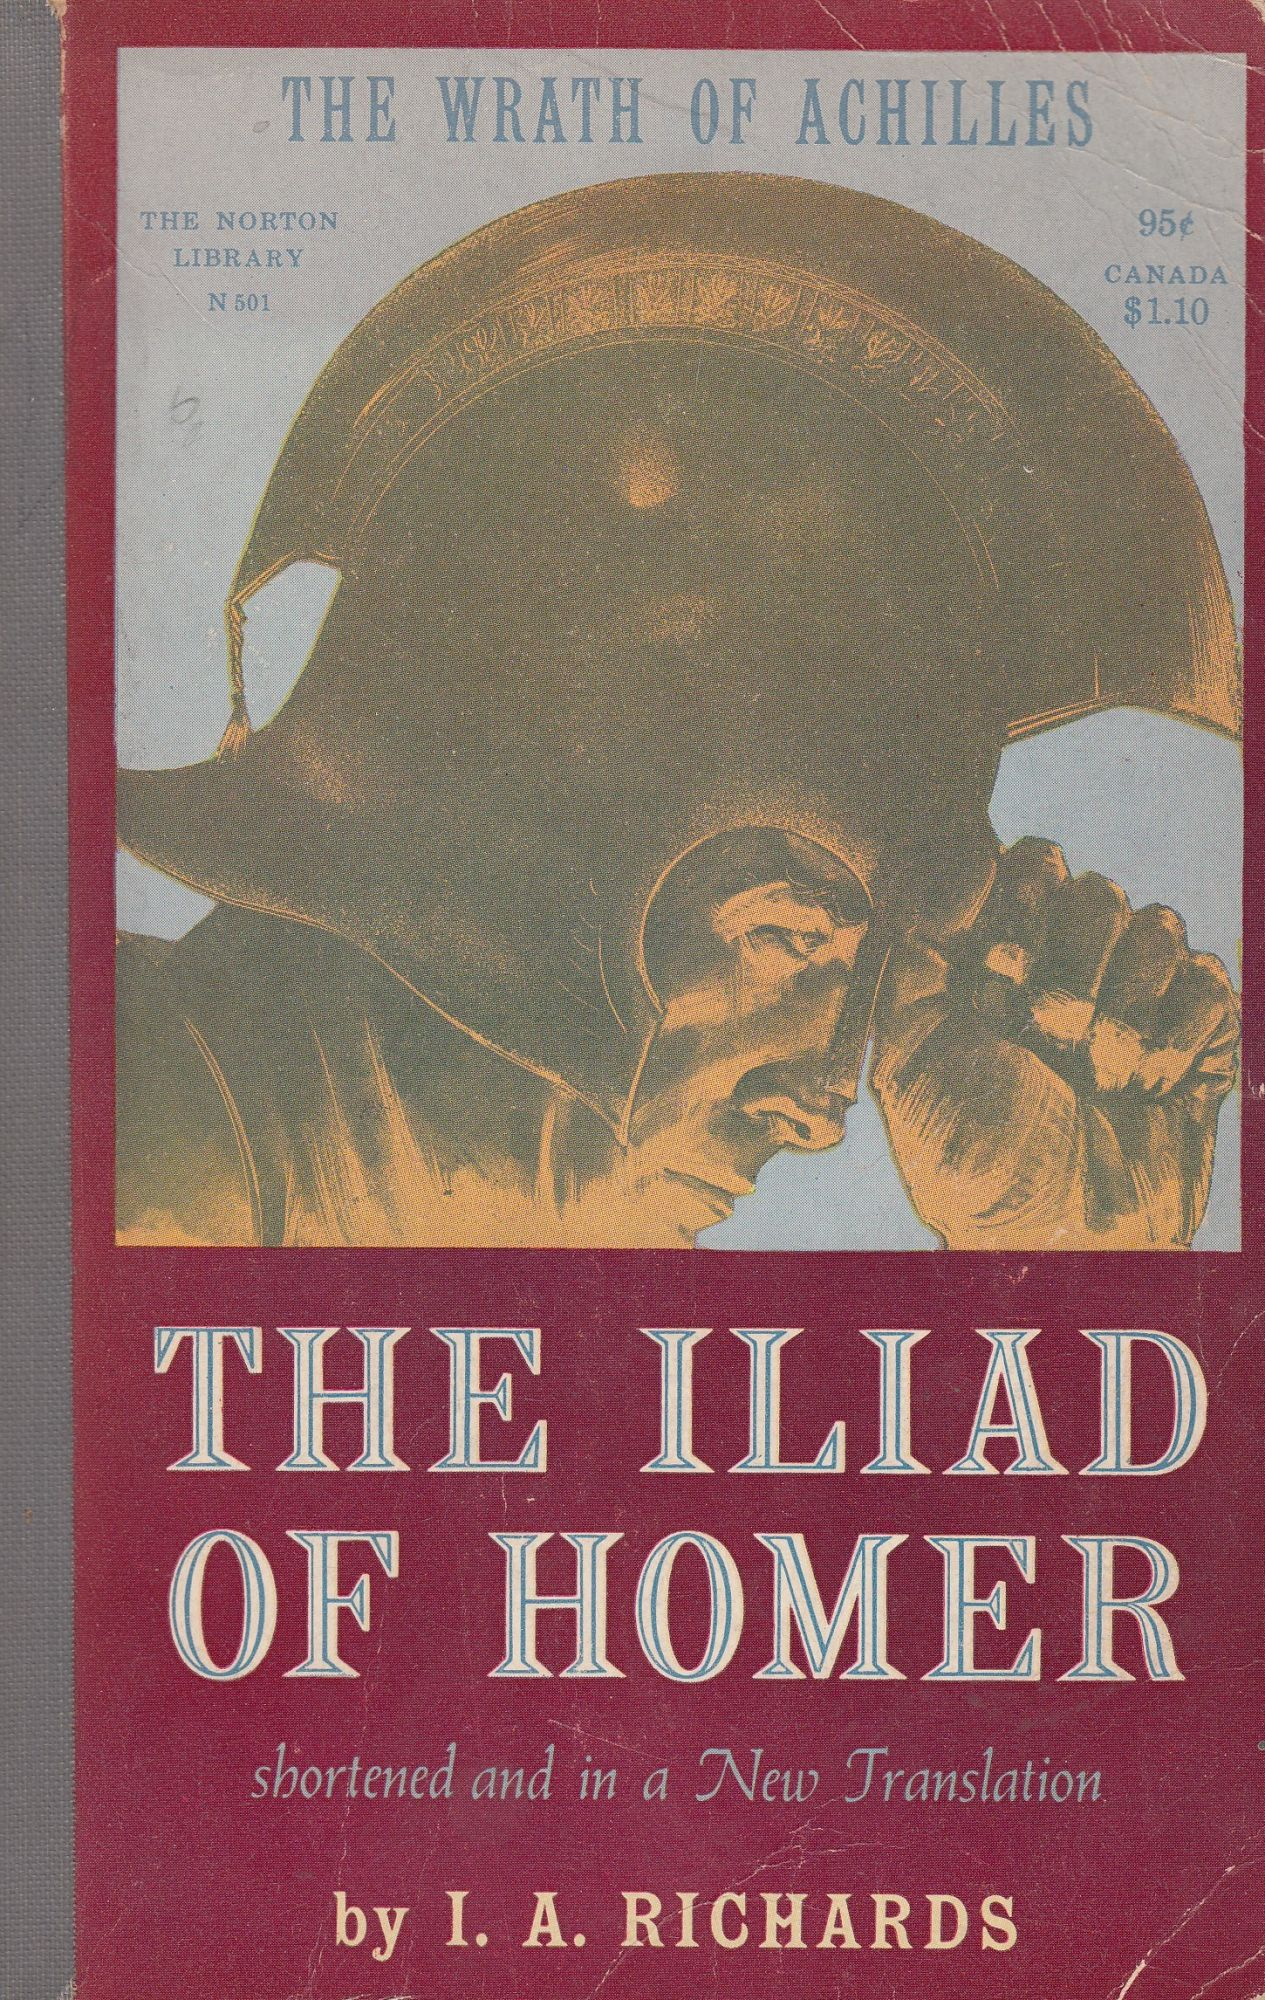 Iliad Homer The Iliad Of Homer The Wrath Of Achilles Shortened And In A New Translation By I A Richards Homer On Bleak House Books